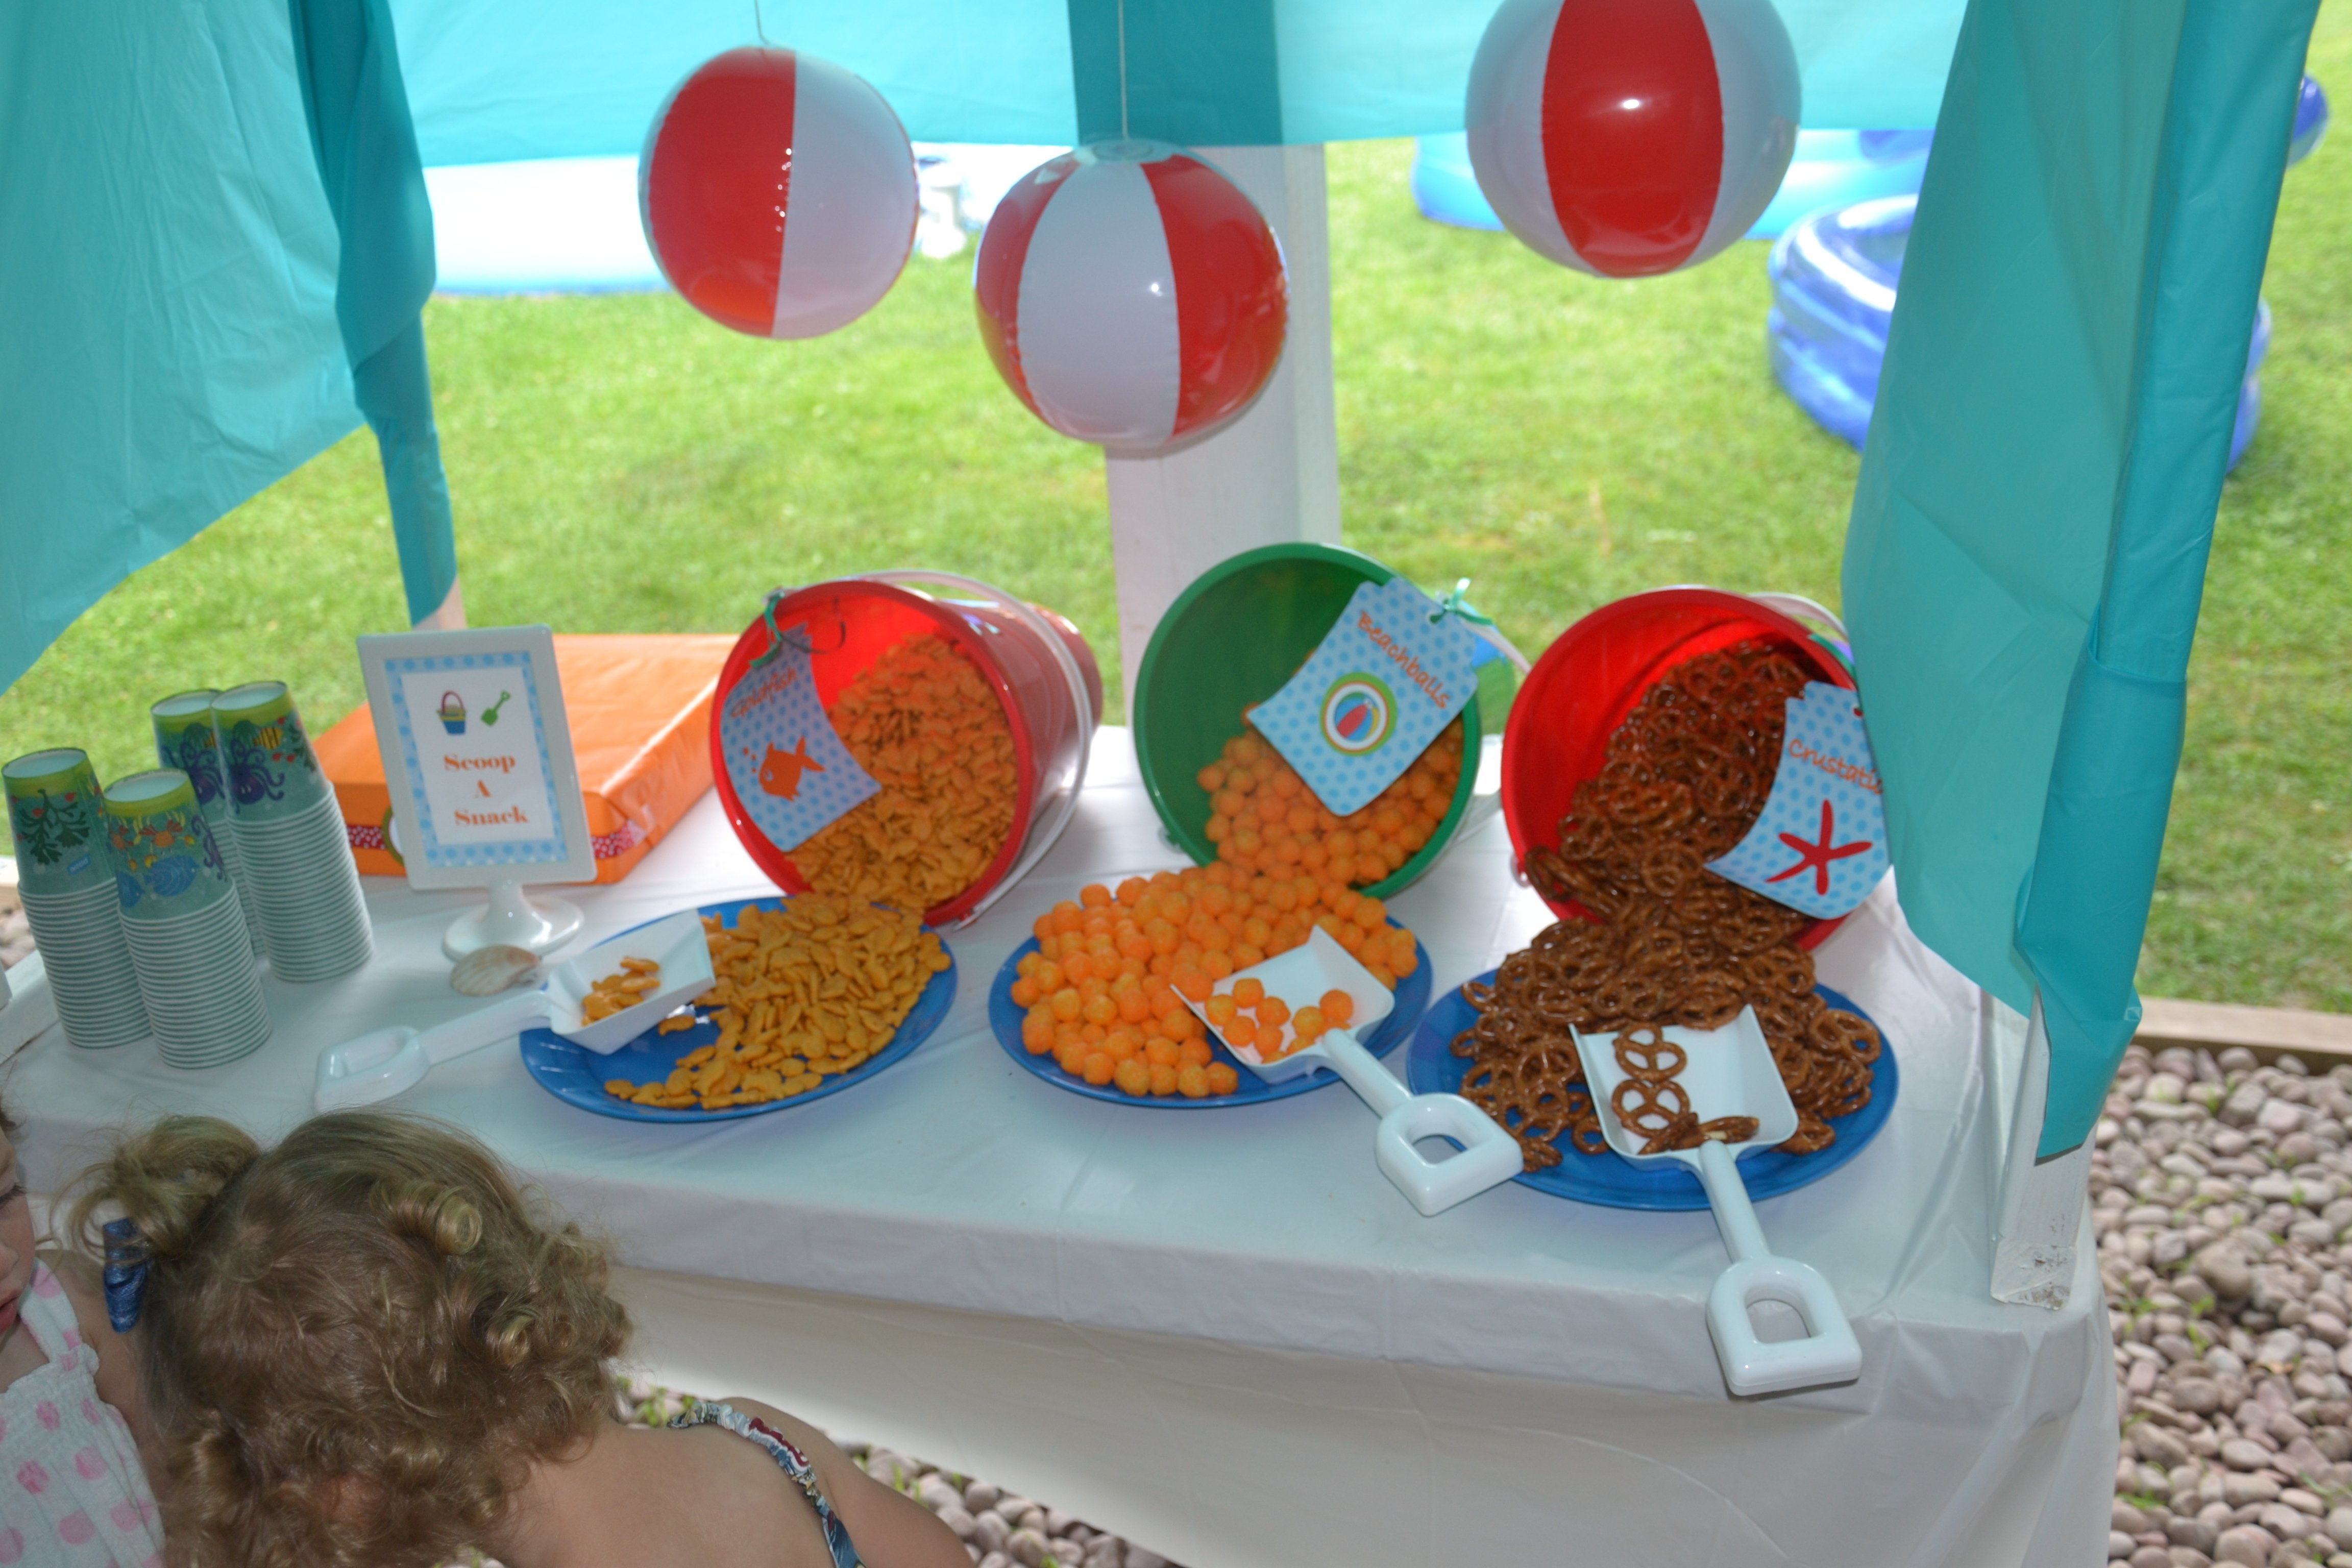 10 Nice Summer Party Ideas For Kids party on a budget ideas for serving summer snacks summer parties 2020